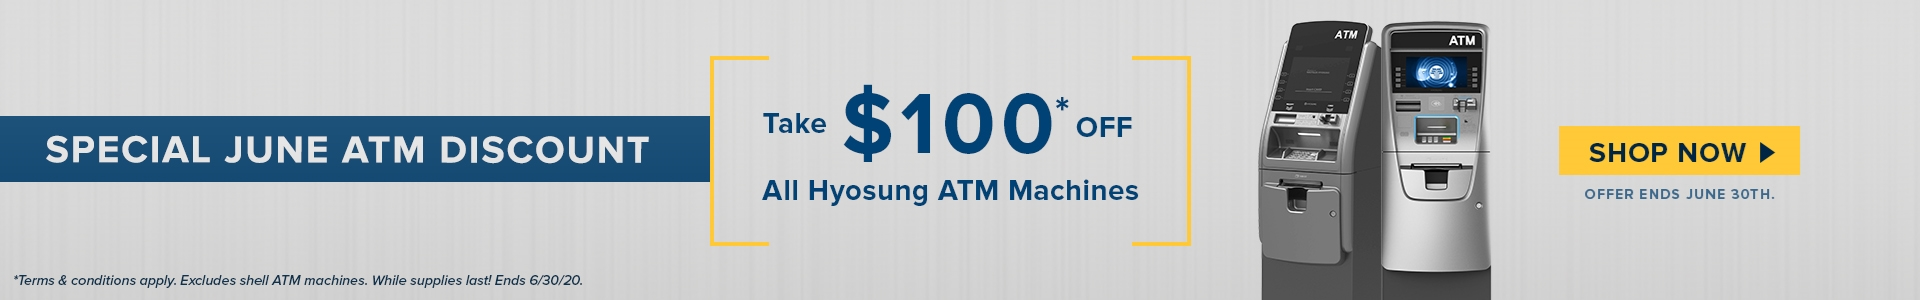 Hyosung $100 off ATM Machines